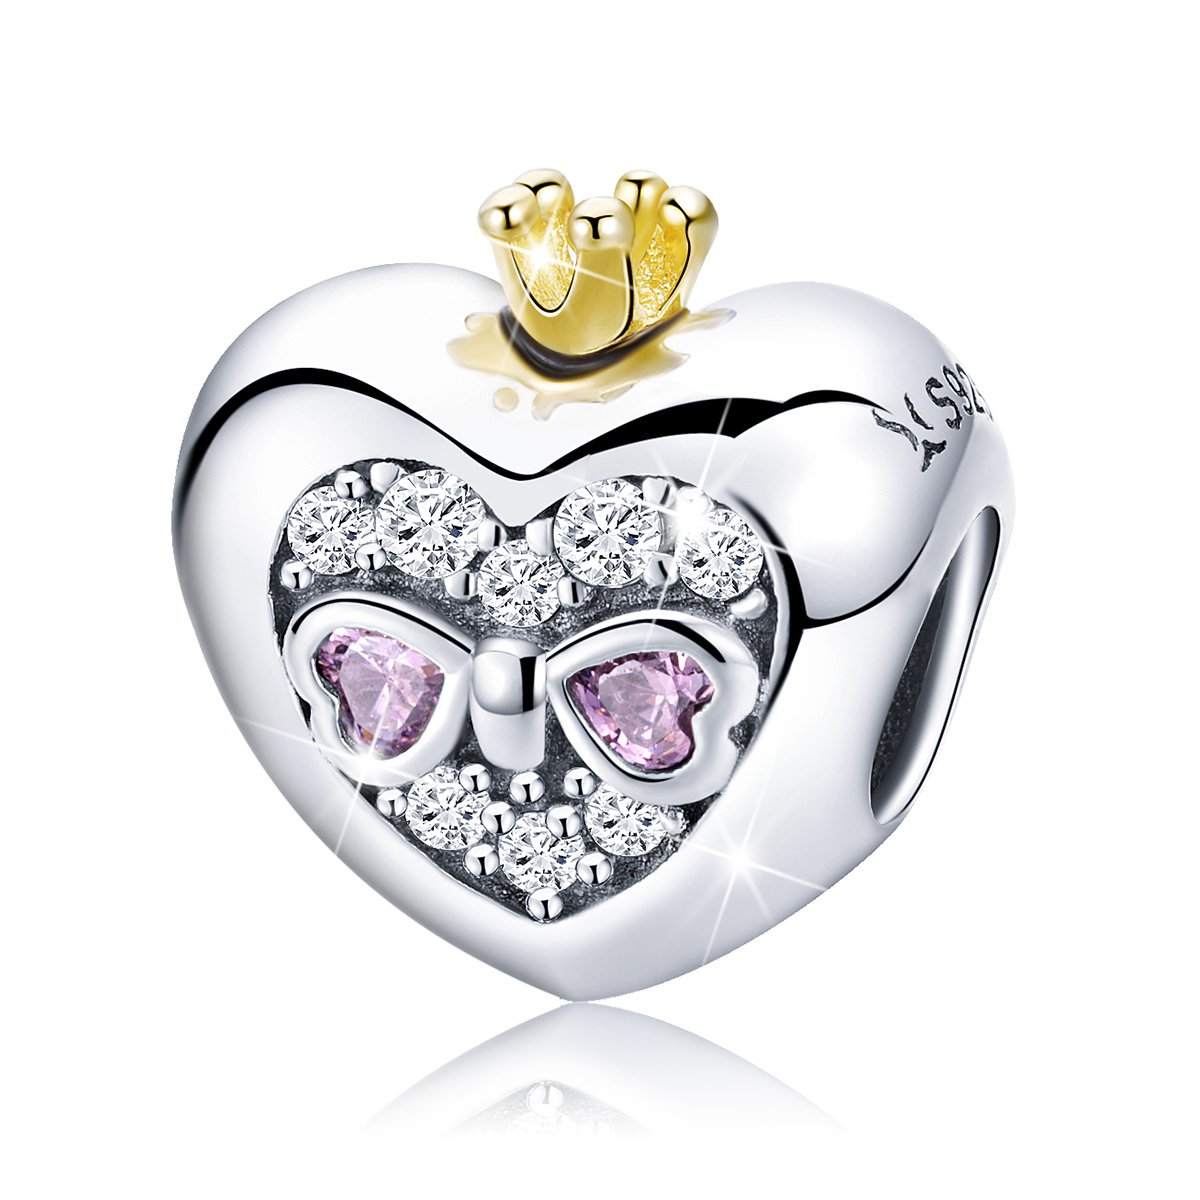 BAMOER Sterling Silver Heart of Princess Love CZ Bead Charm for DIY Snake Chain Bracelet by BAMOER (Image #1)